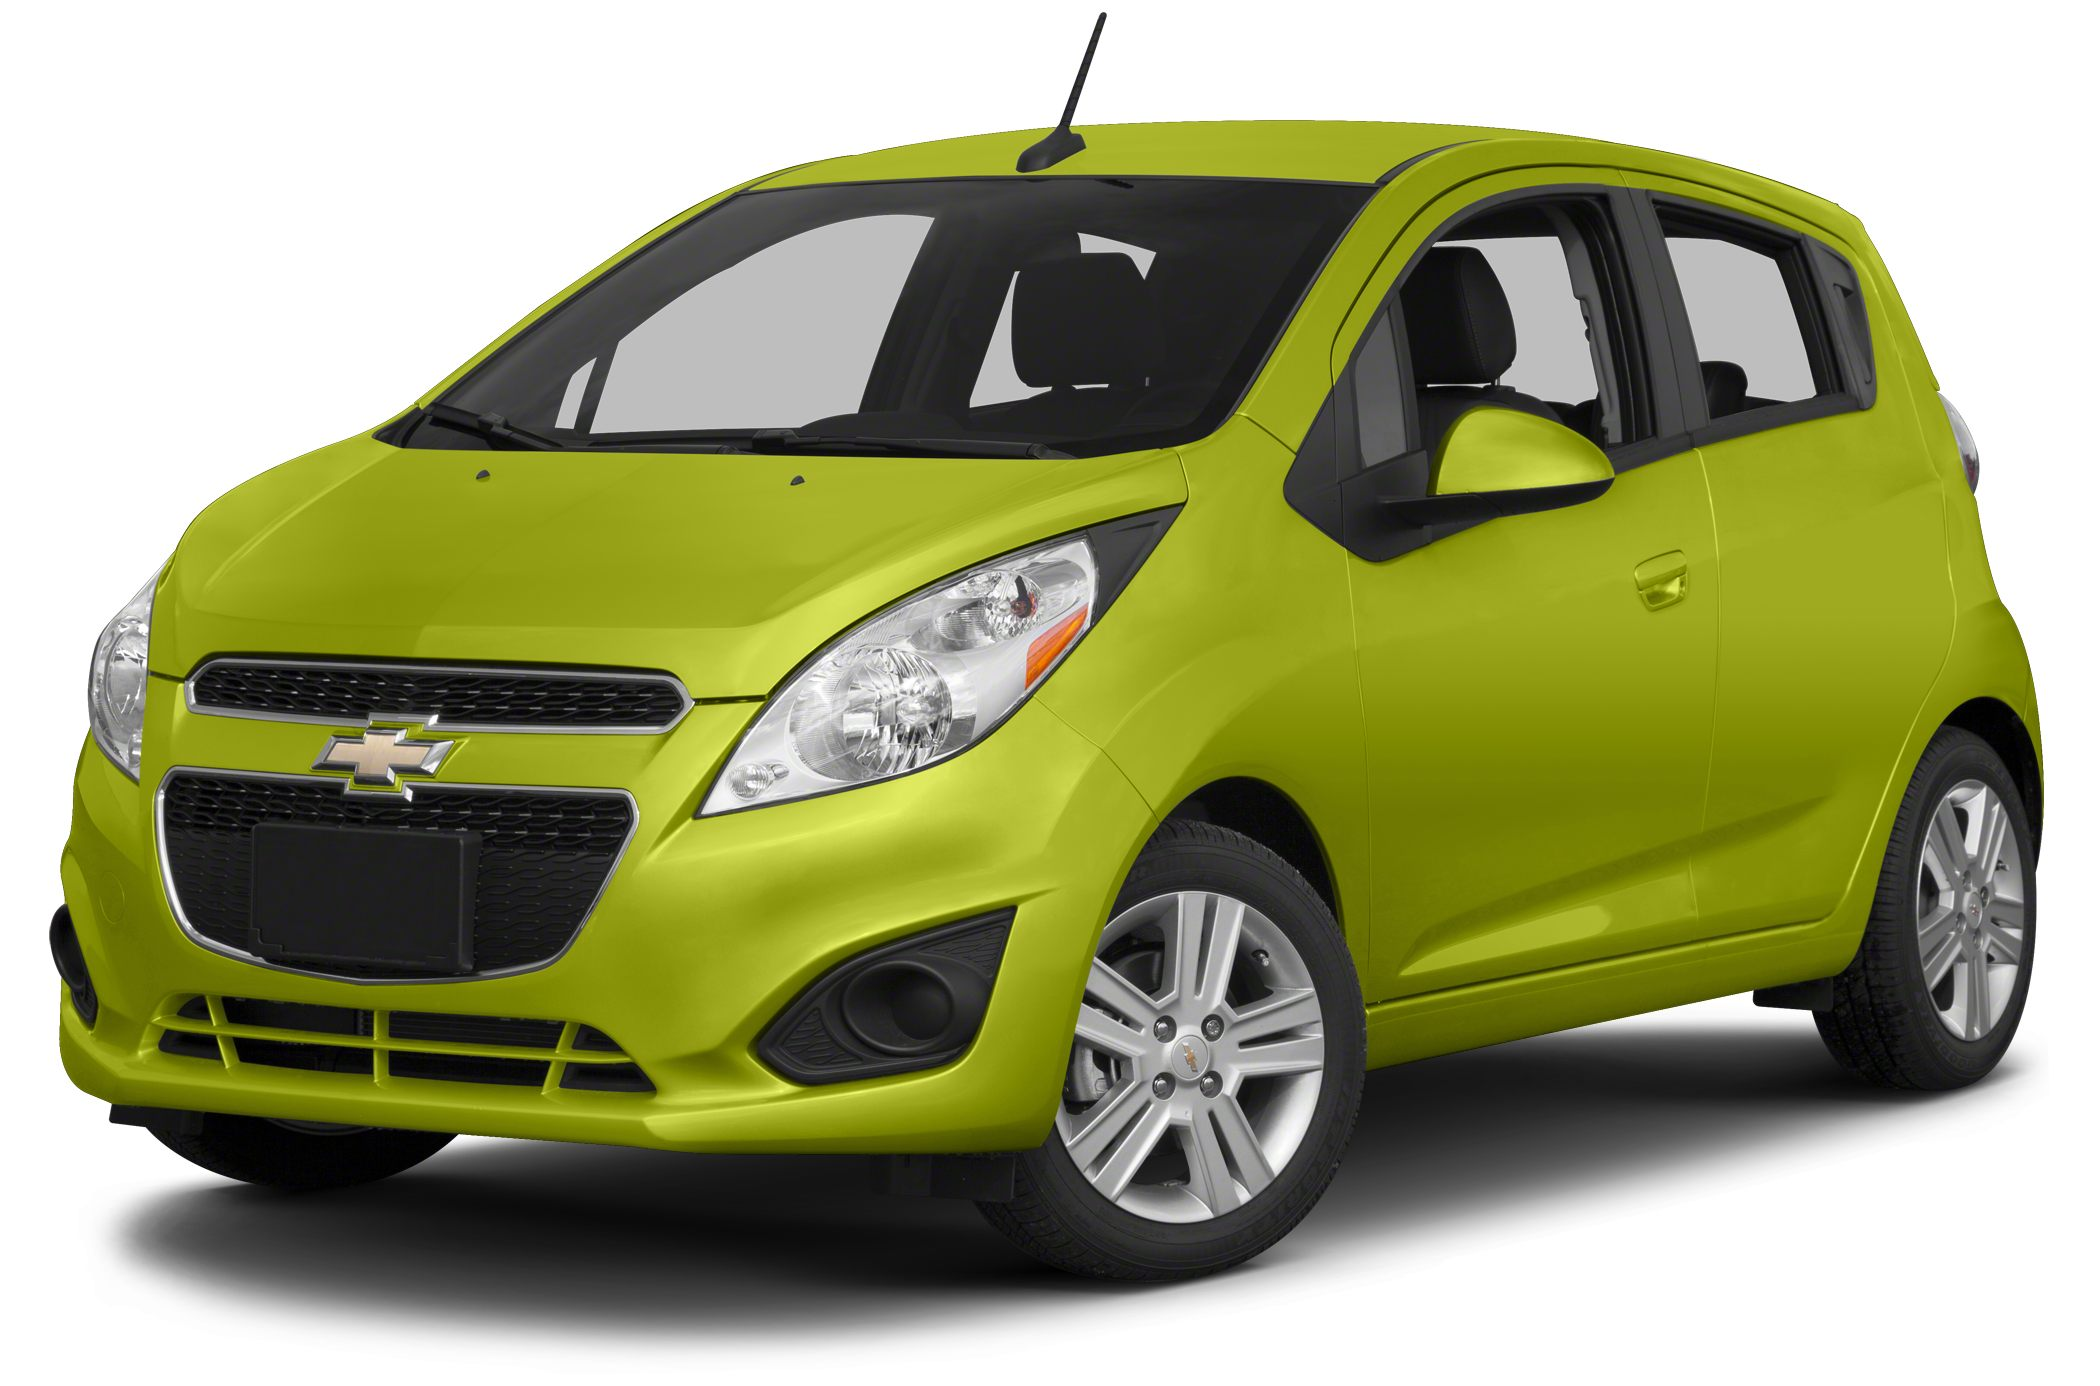 2014 Chevrolet Spark 1LT Hatchback for sale in Fargo for $16,120 with 2,258 miles.